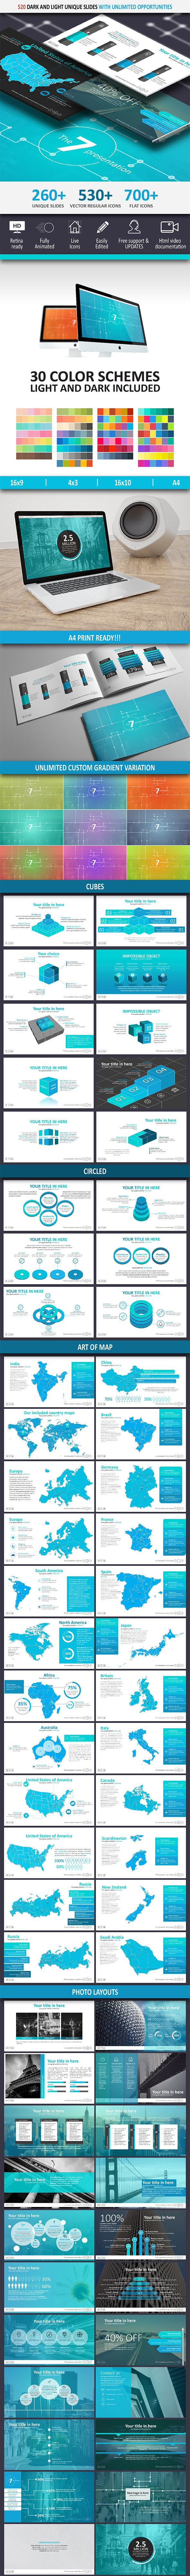 The 7 Powerpoint Presentation Template - Business PowerPoint Templates